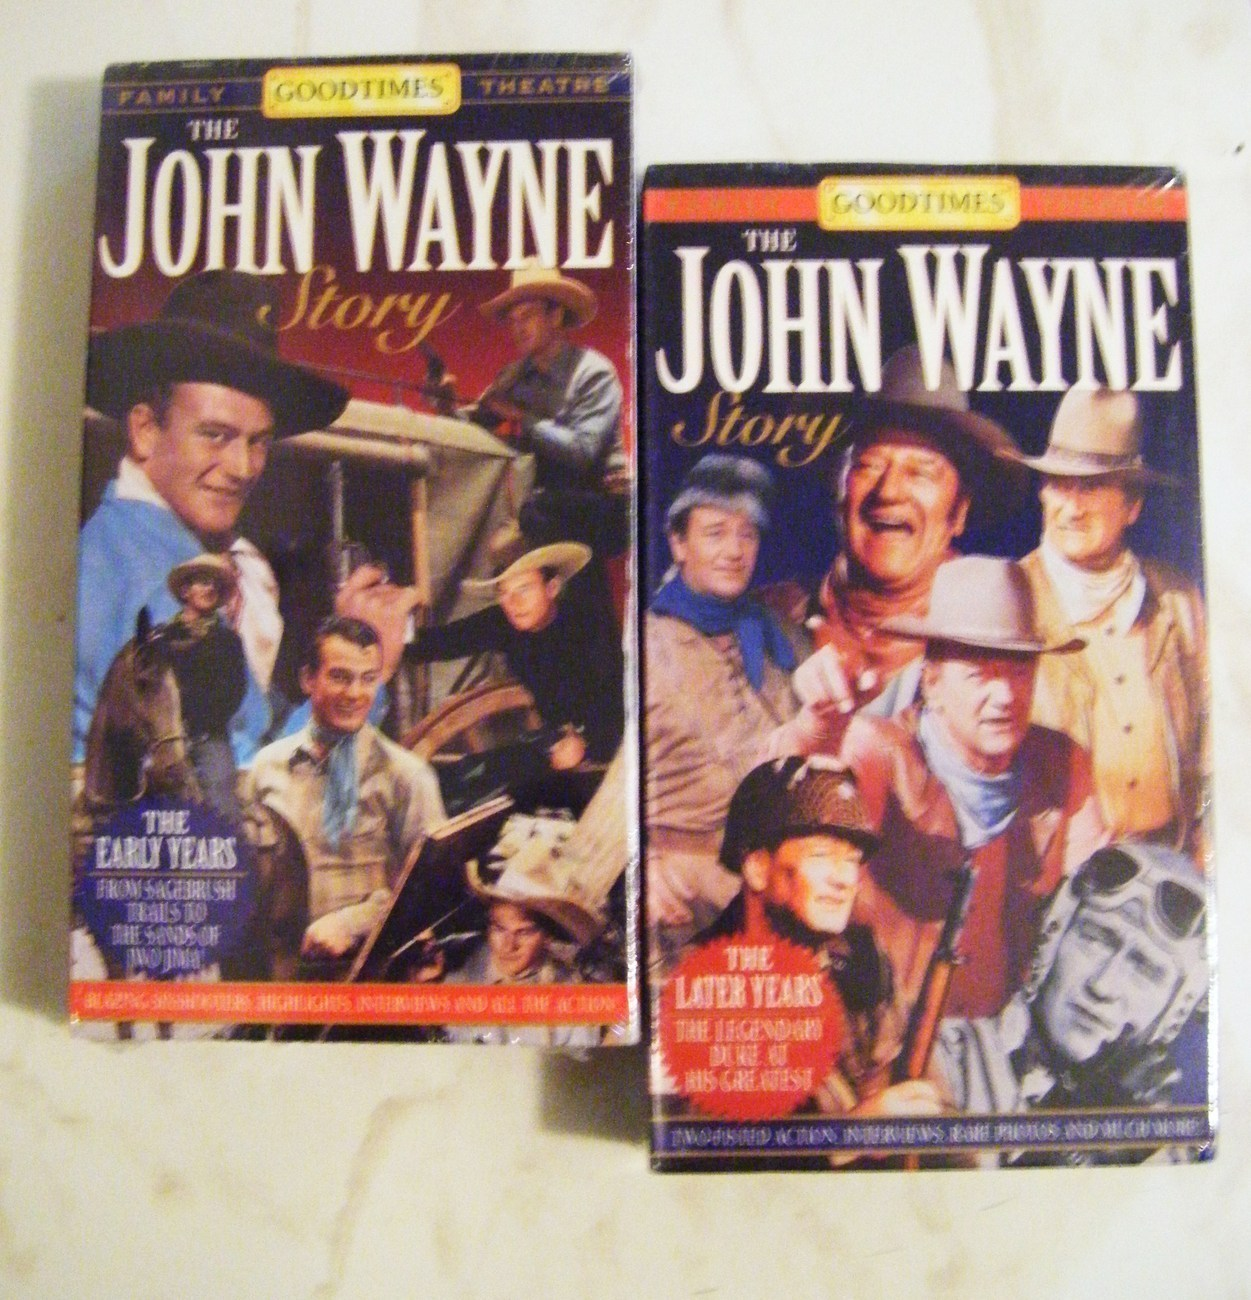 The John Wayne Story: The Early & Later Tears 2-VHS Set, NIB